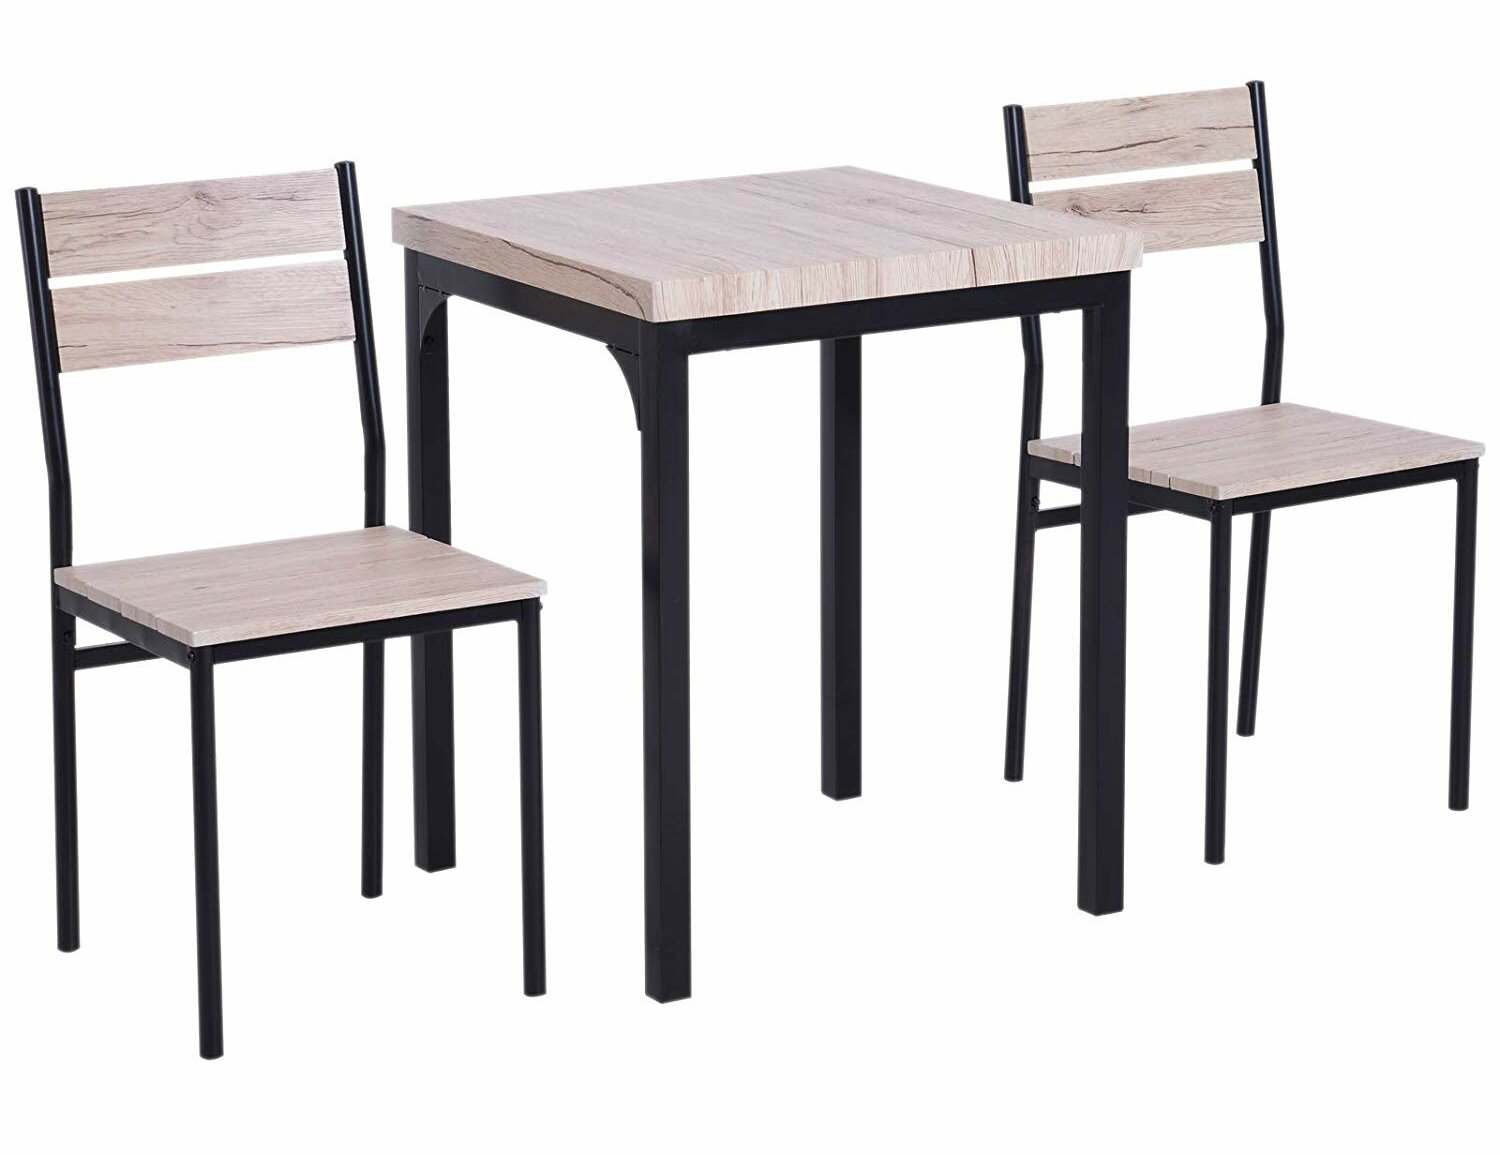 Merveilleux Staley Rustic Country 3 Piece Dining Set